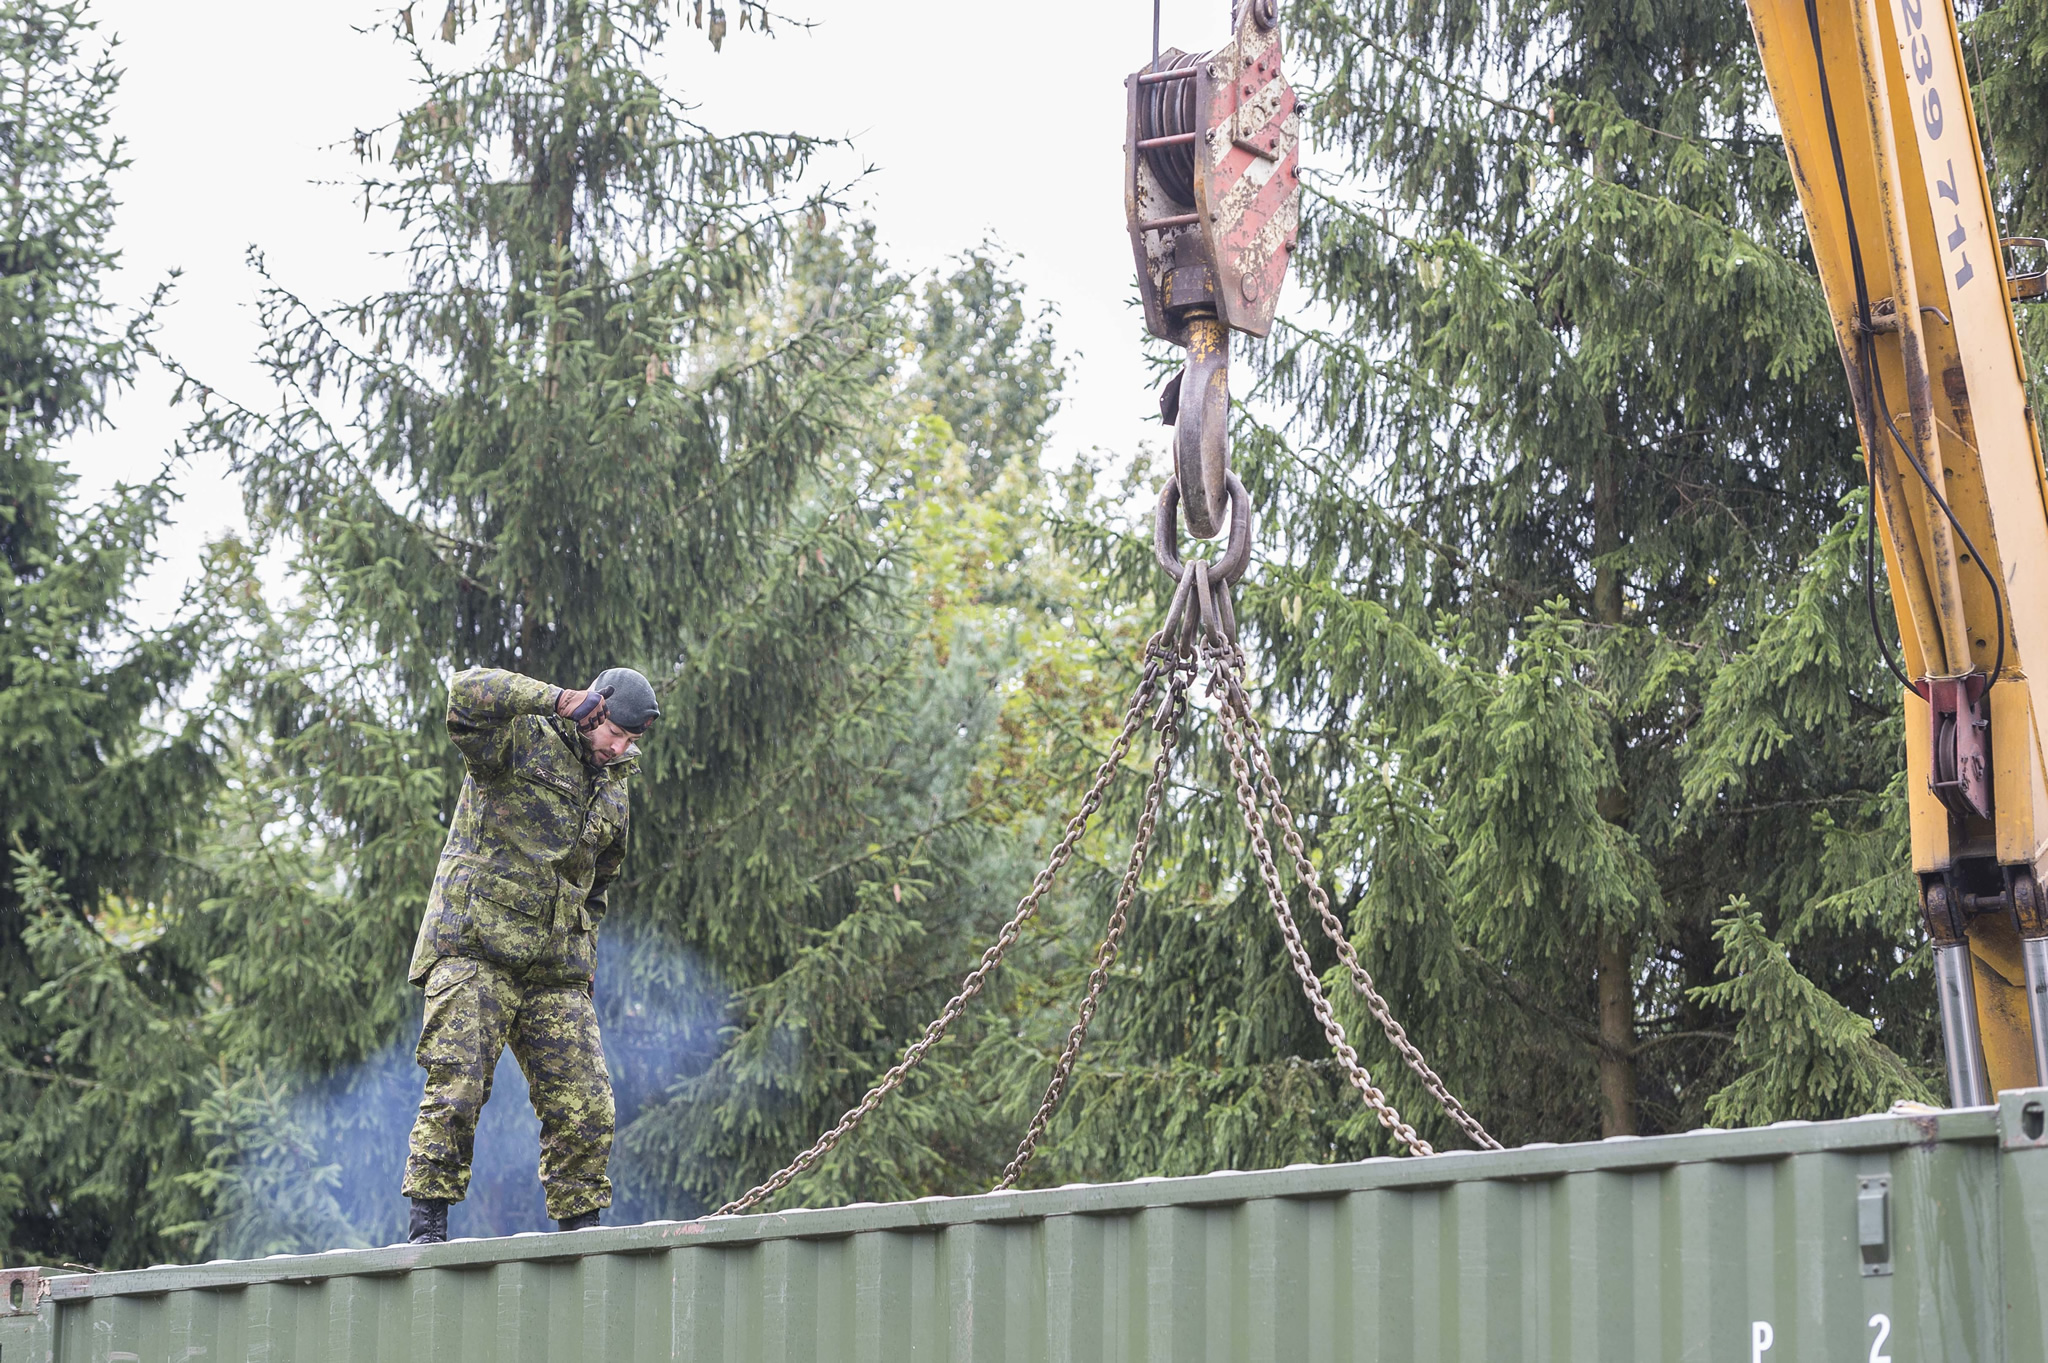 Glebokie, Poland. 11 September 2015 - Corporal Pierre-Michel Landry signals the crane operator after loading a sea container on a flatbed for transportation to EX SILVER ARROW during Operation REASSURANCE. (Photo: Corporal Nathan Moulton, Land Task Force Imagery, OP REASSURANCE)